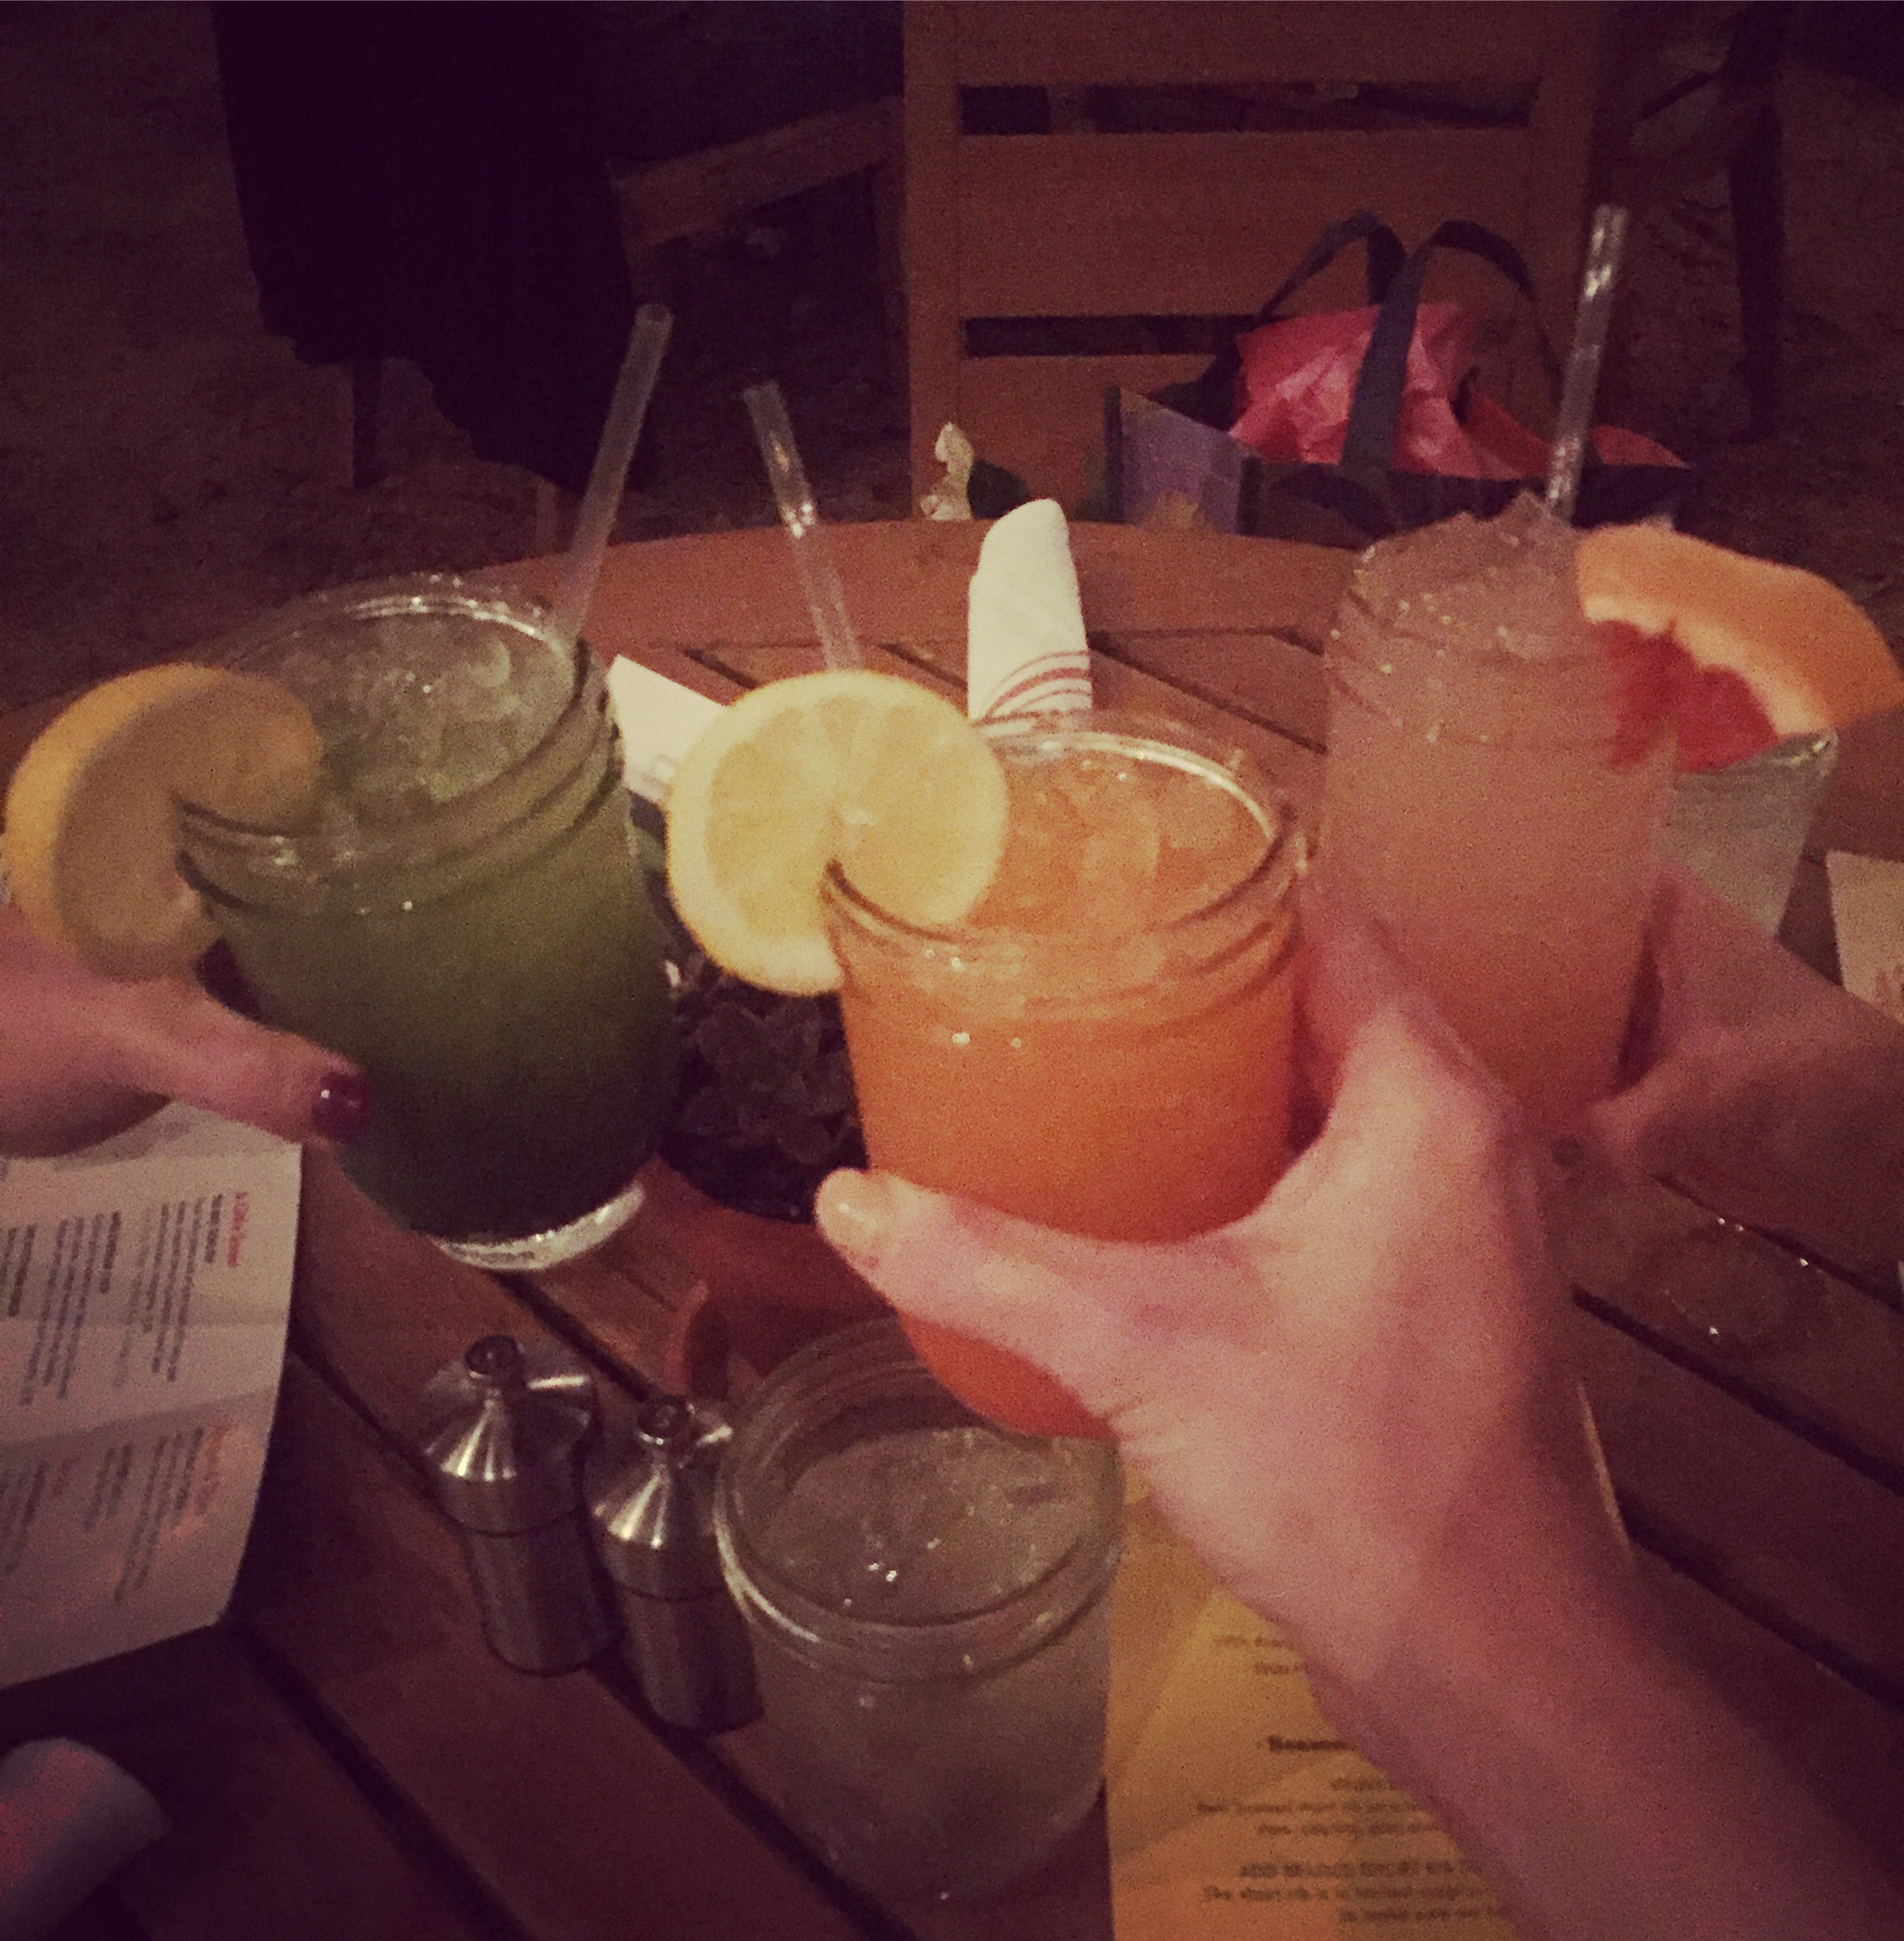 Cheers! I celebrated my 31st birthday with yummy drinks at Vinaigrette in 2017.